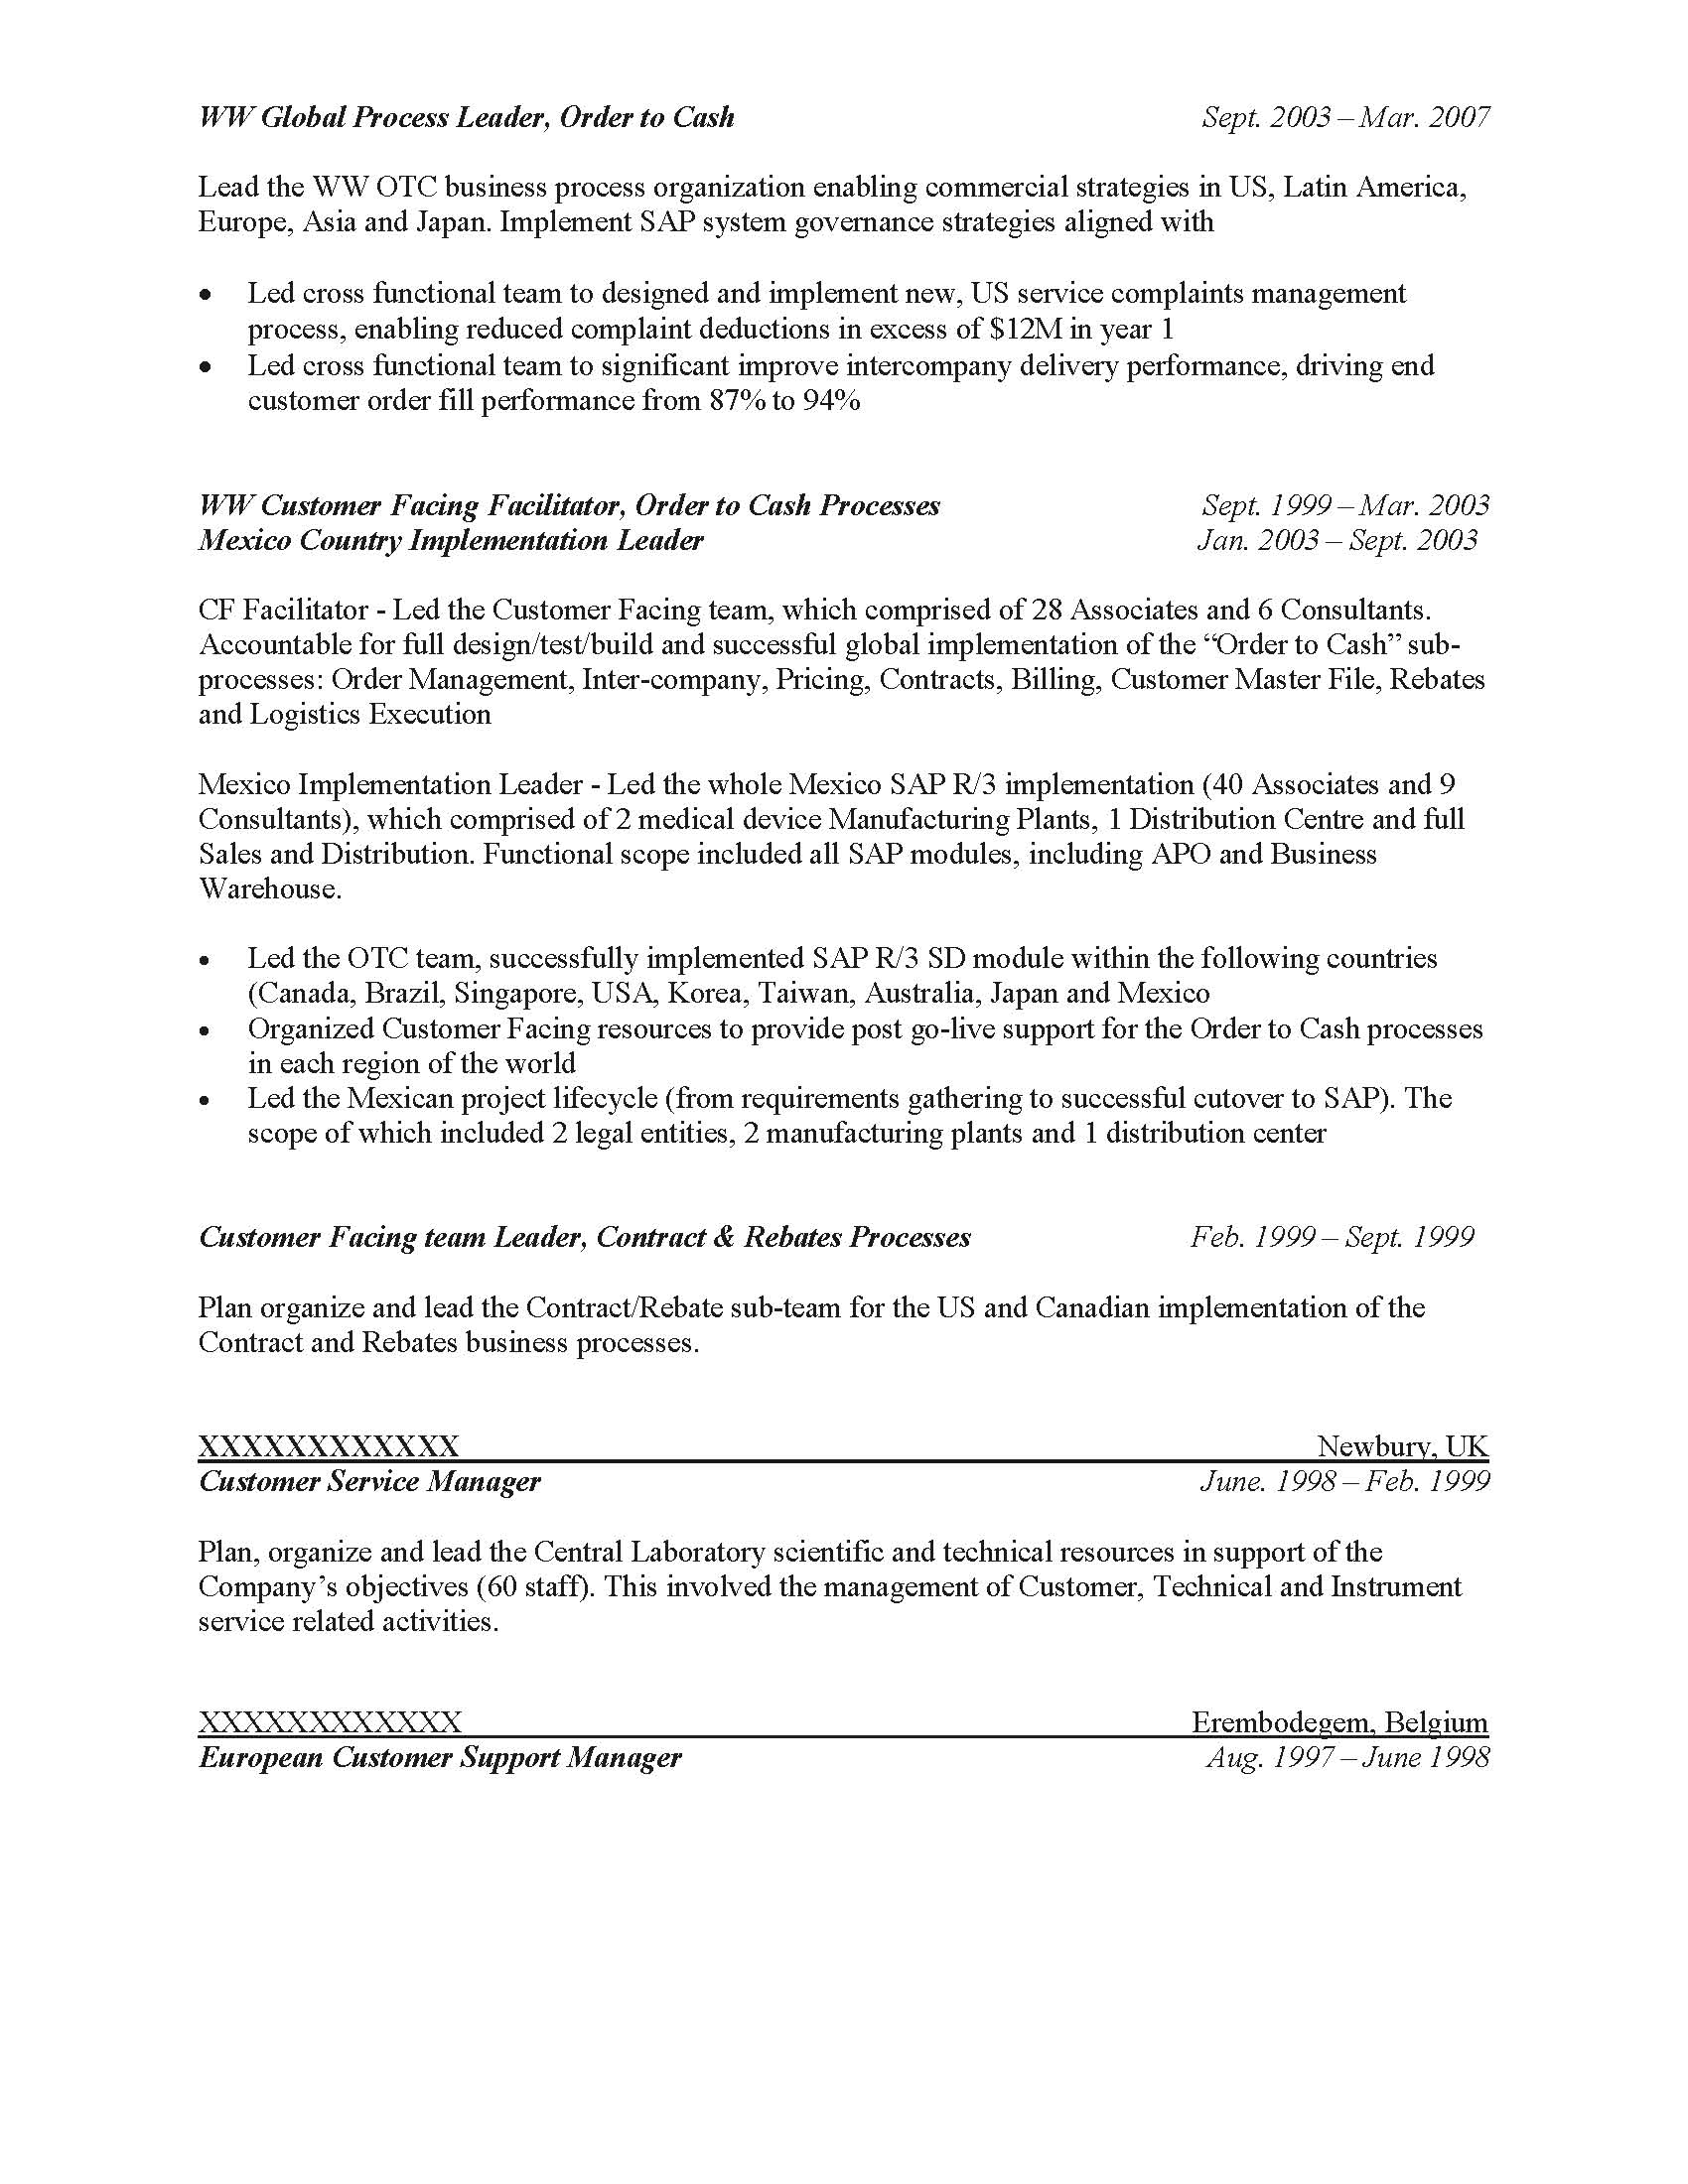 executive resume samples  resume prime also business process leader resume sample